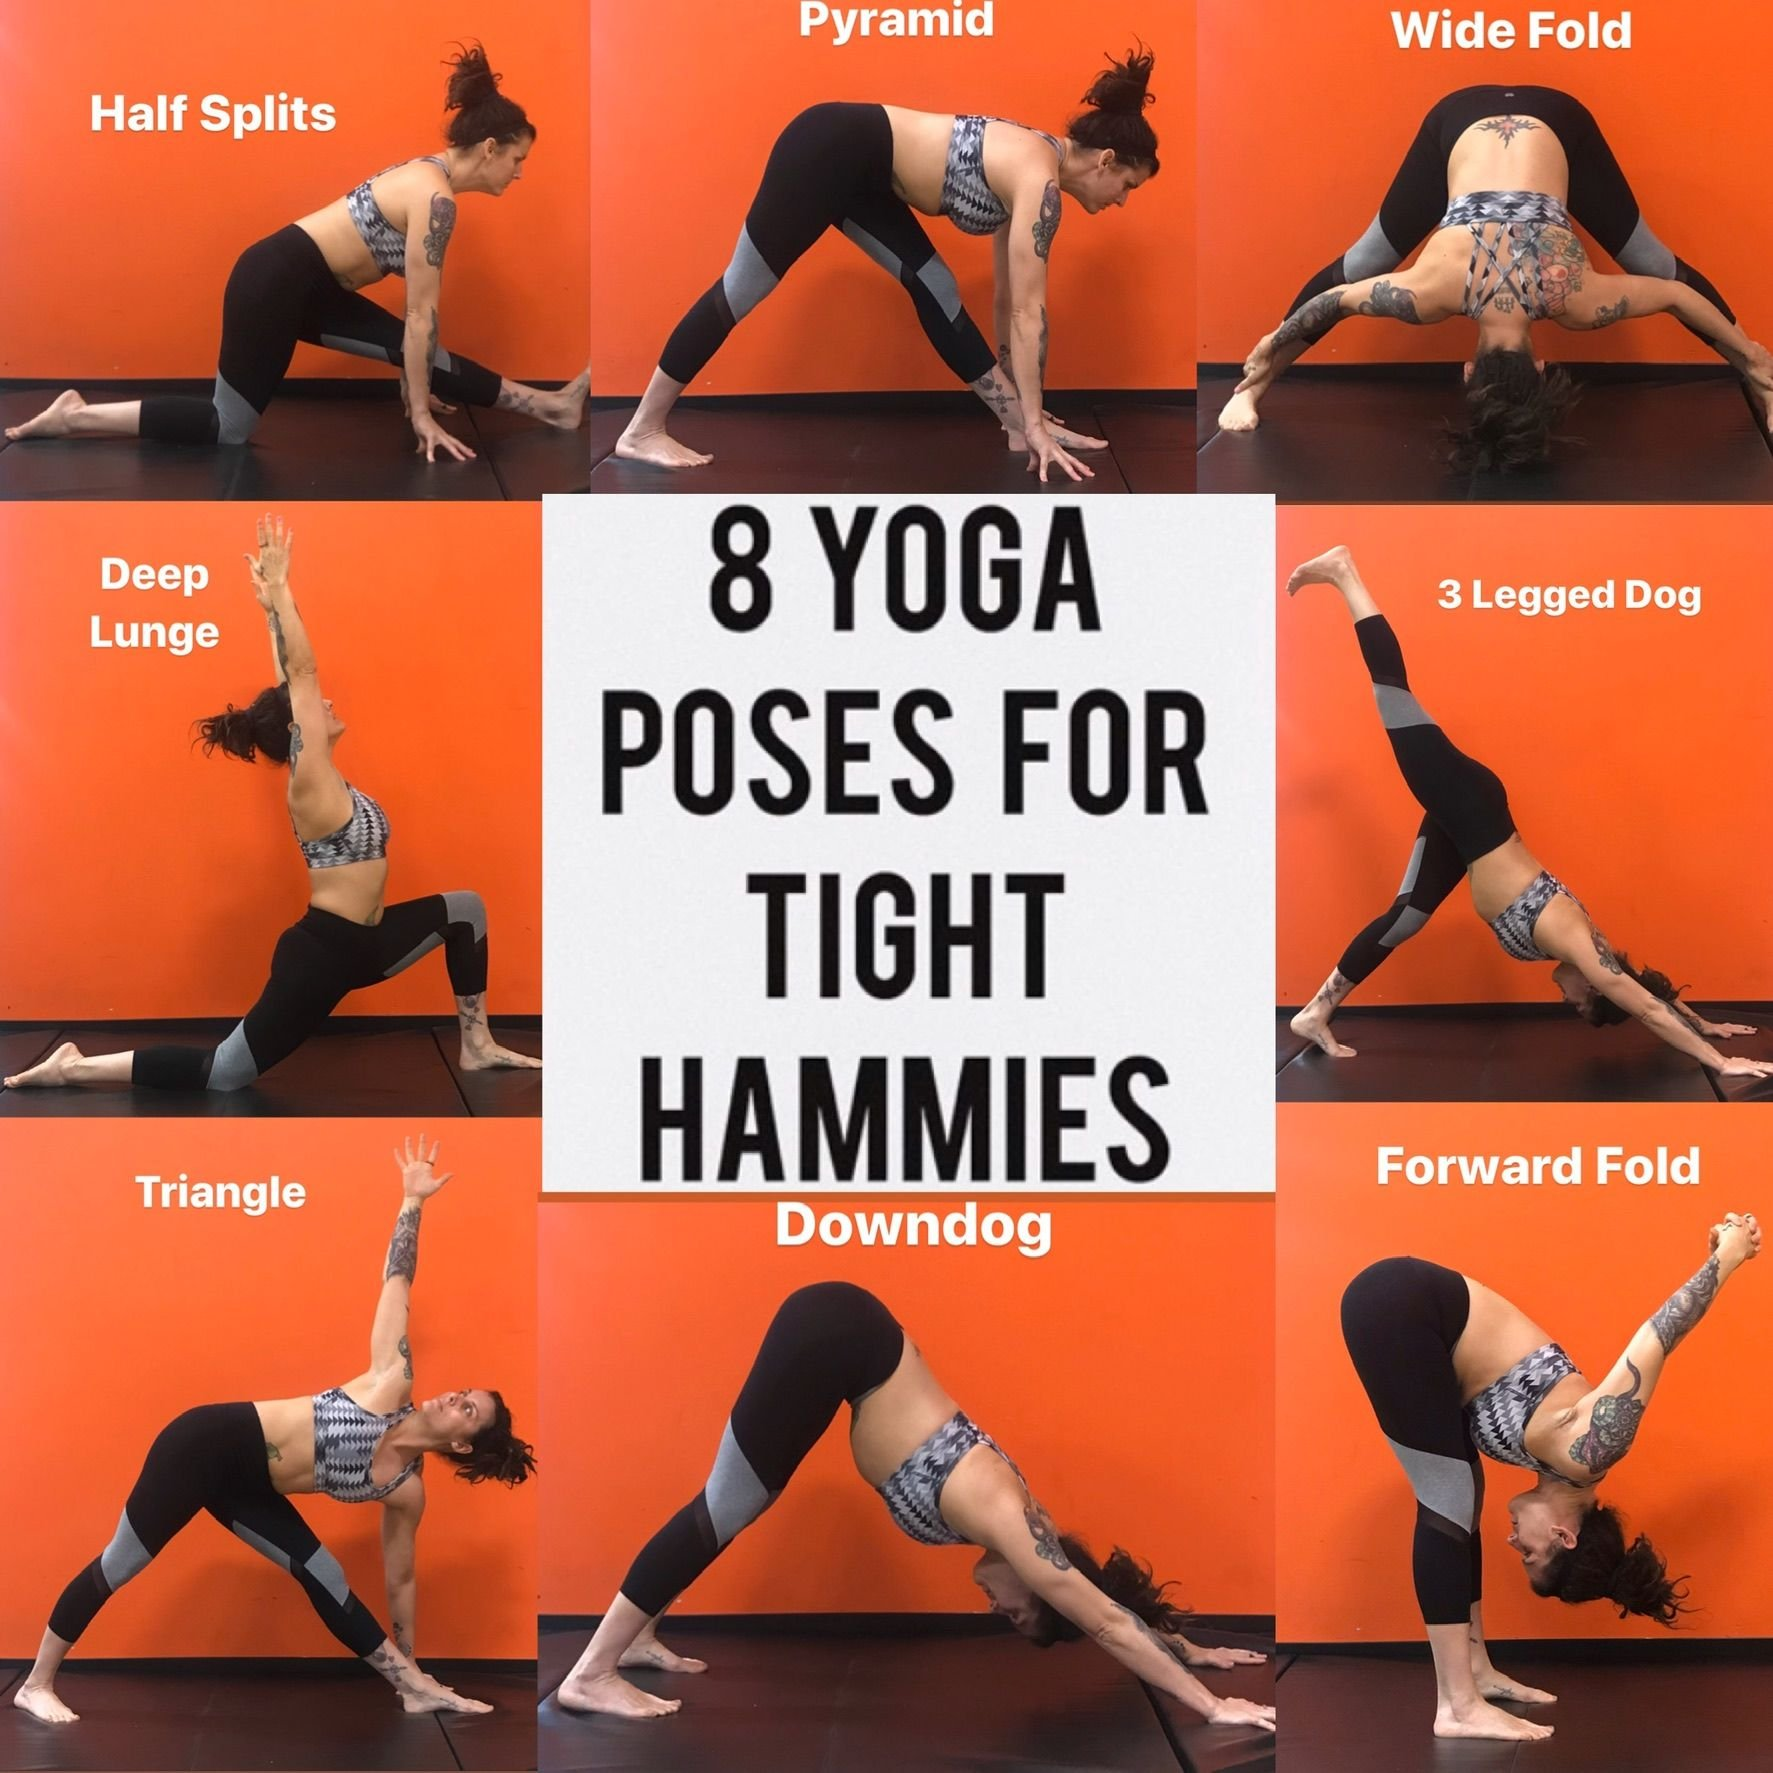 Yoga Poses For Tight Hamstrings